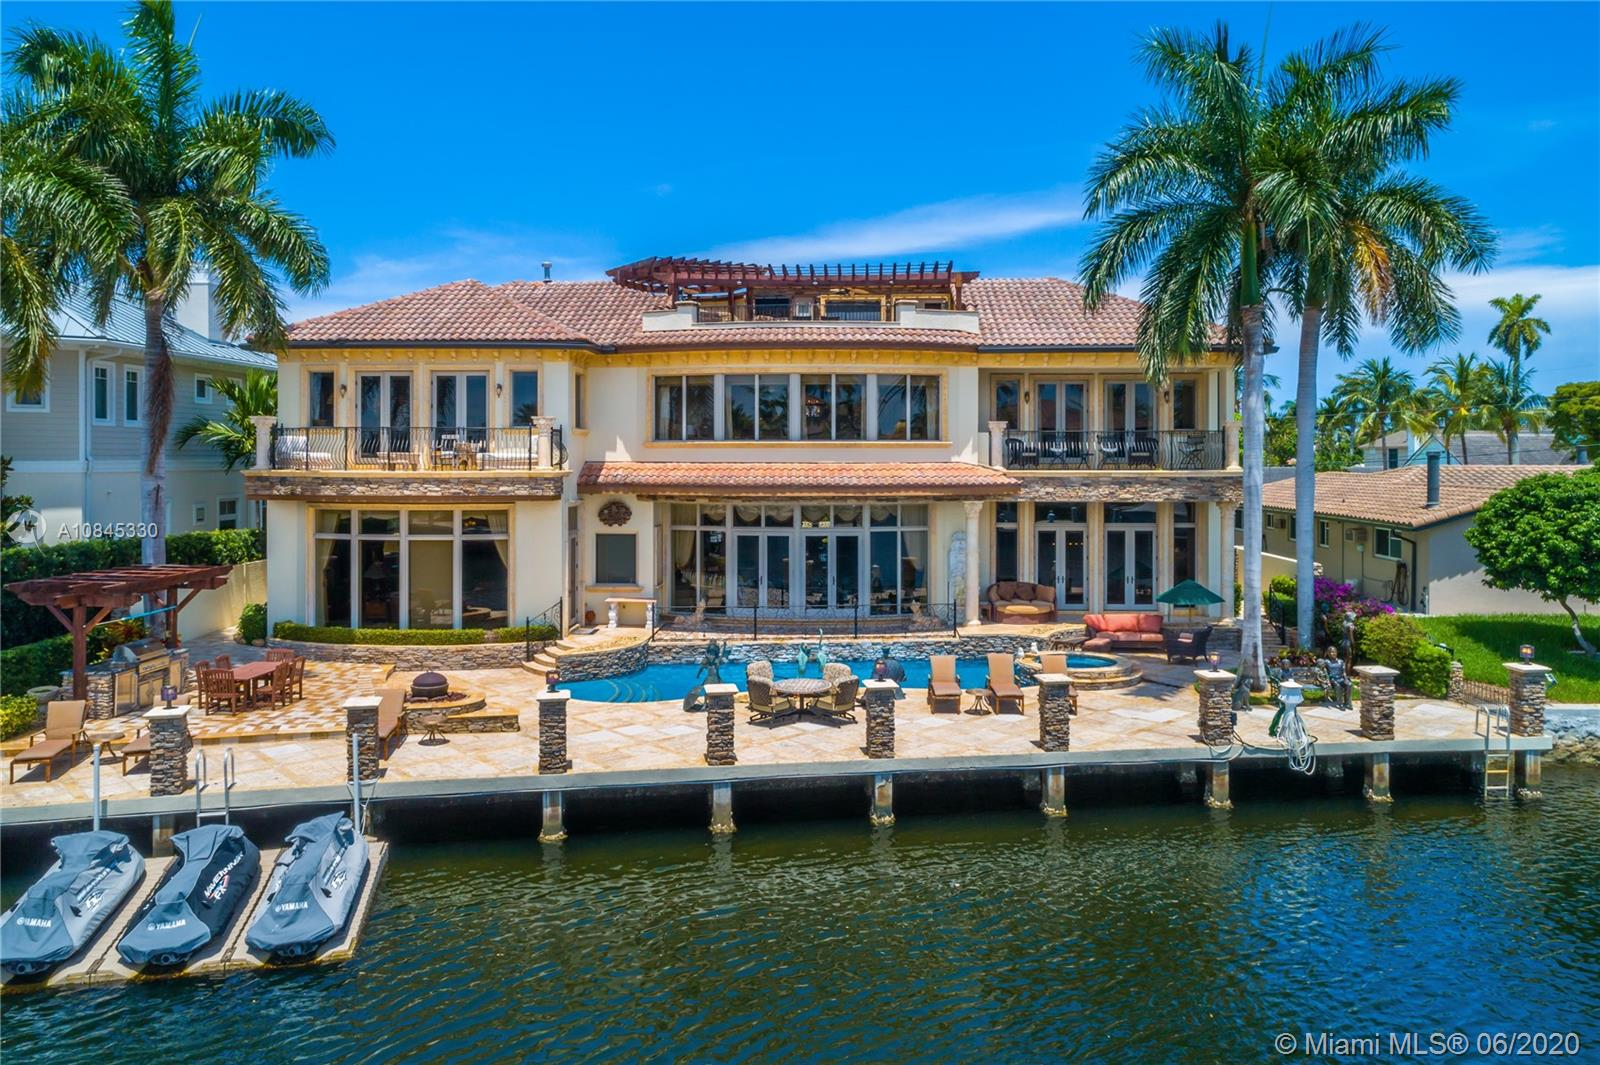 Incredible estate in the heart of Lighthouse Point. Casa Del Toro, is a lavish waterfront home with 5 bedrooms, 7 full bathrooms, and 2 powder rooms. Tucked away on a quiet, deep water canal with ocean access, 108' of water frontage offers water views from nearly every room in the house. A rooftop summer kitchen, three oversized balconies, and an oversized pool deck with a BBQ provide many vignettes to entertain and enjoy the fabulous Florida weather. Home features 9,221 sq ft interior with spacious family room, living room, billiards club with bar, eleven seat home theater, formal dining, sauna, and 3 car garage. House can be shown anytime!